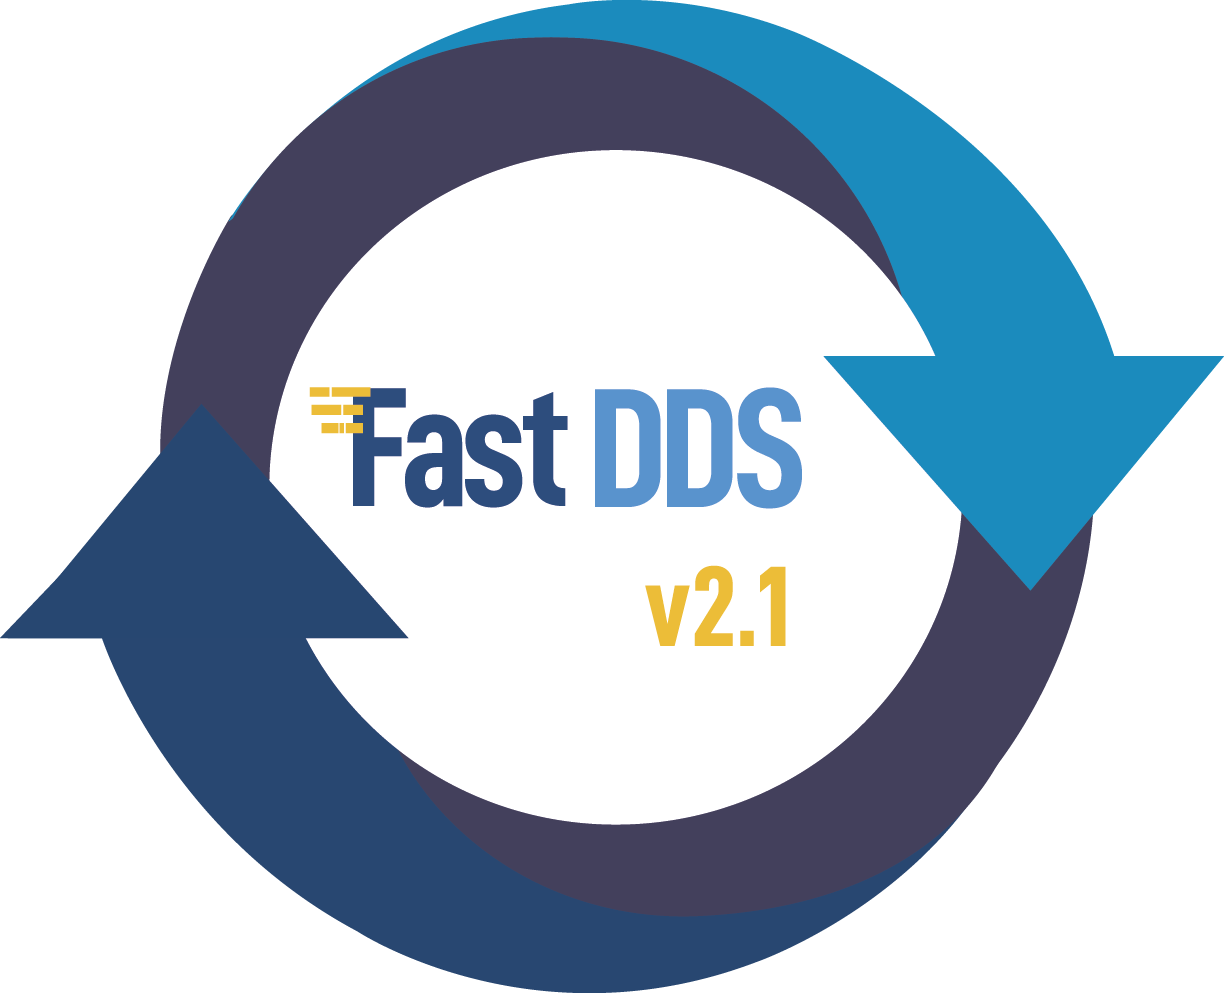 Fast DDS release